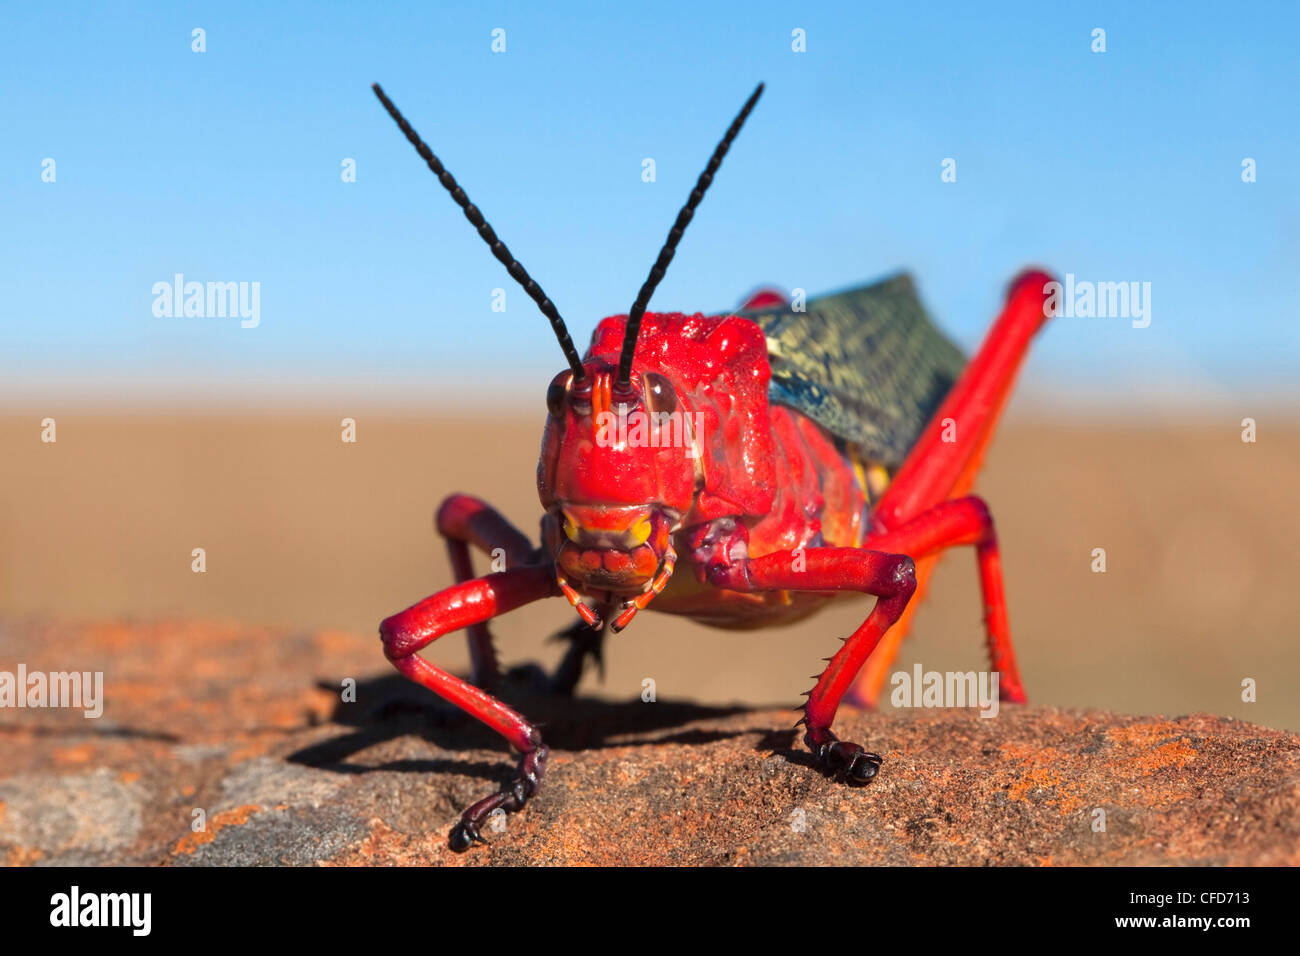 Common milkweed locust (Phymateus morbillosus), Samara private game reserve, Karoo, South Africa, Africa - Stock Image